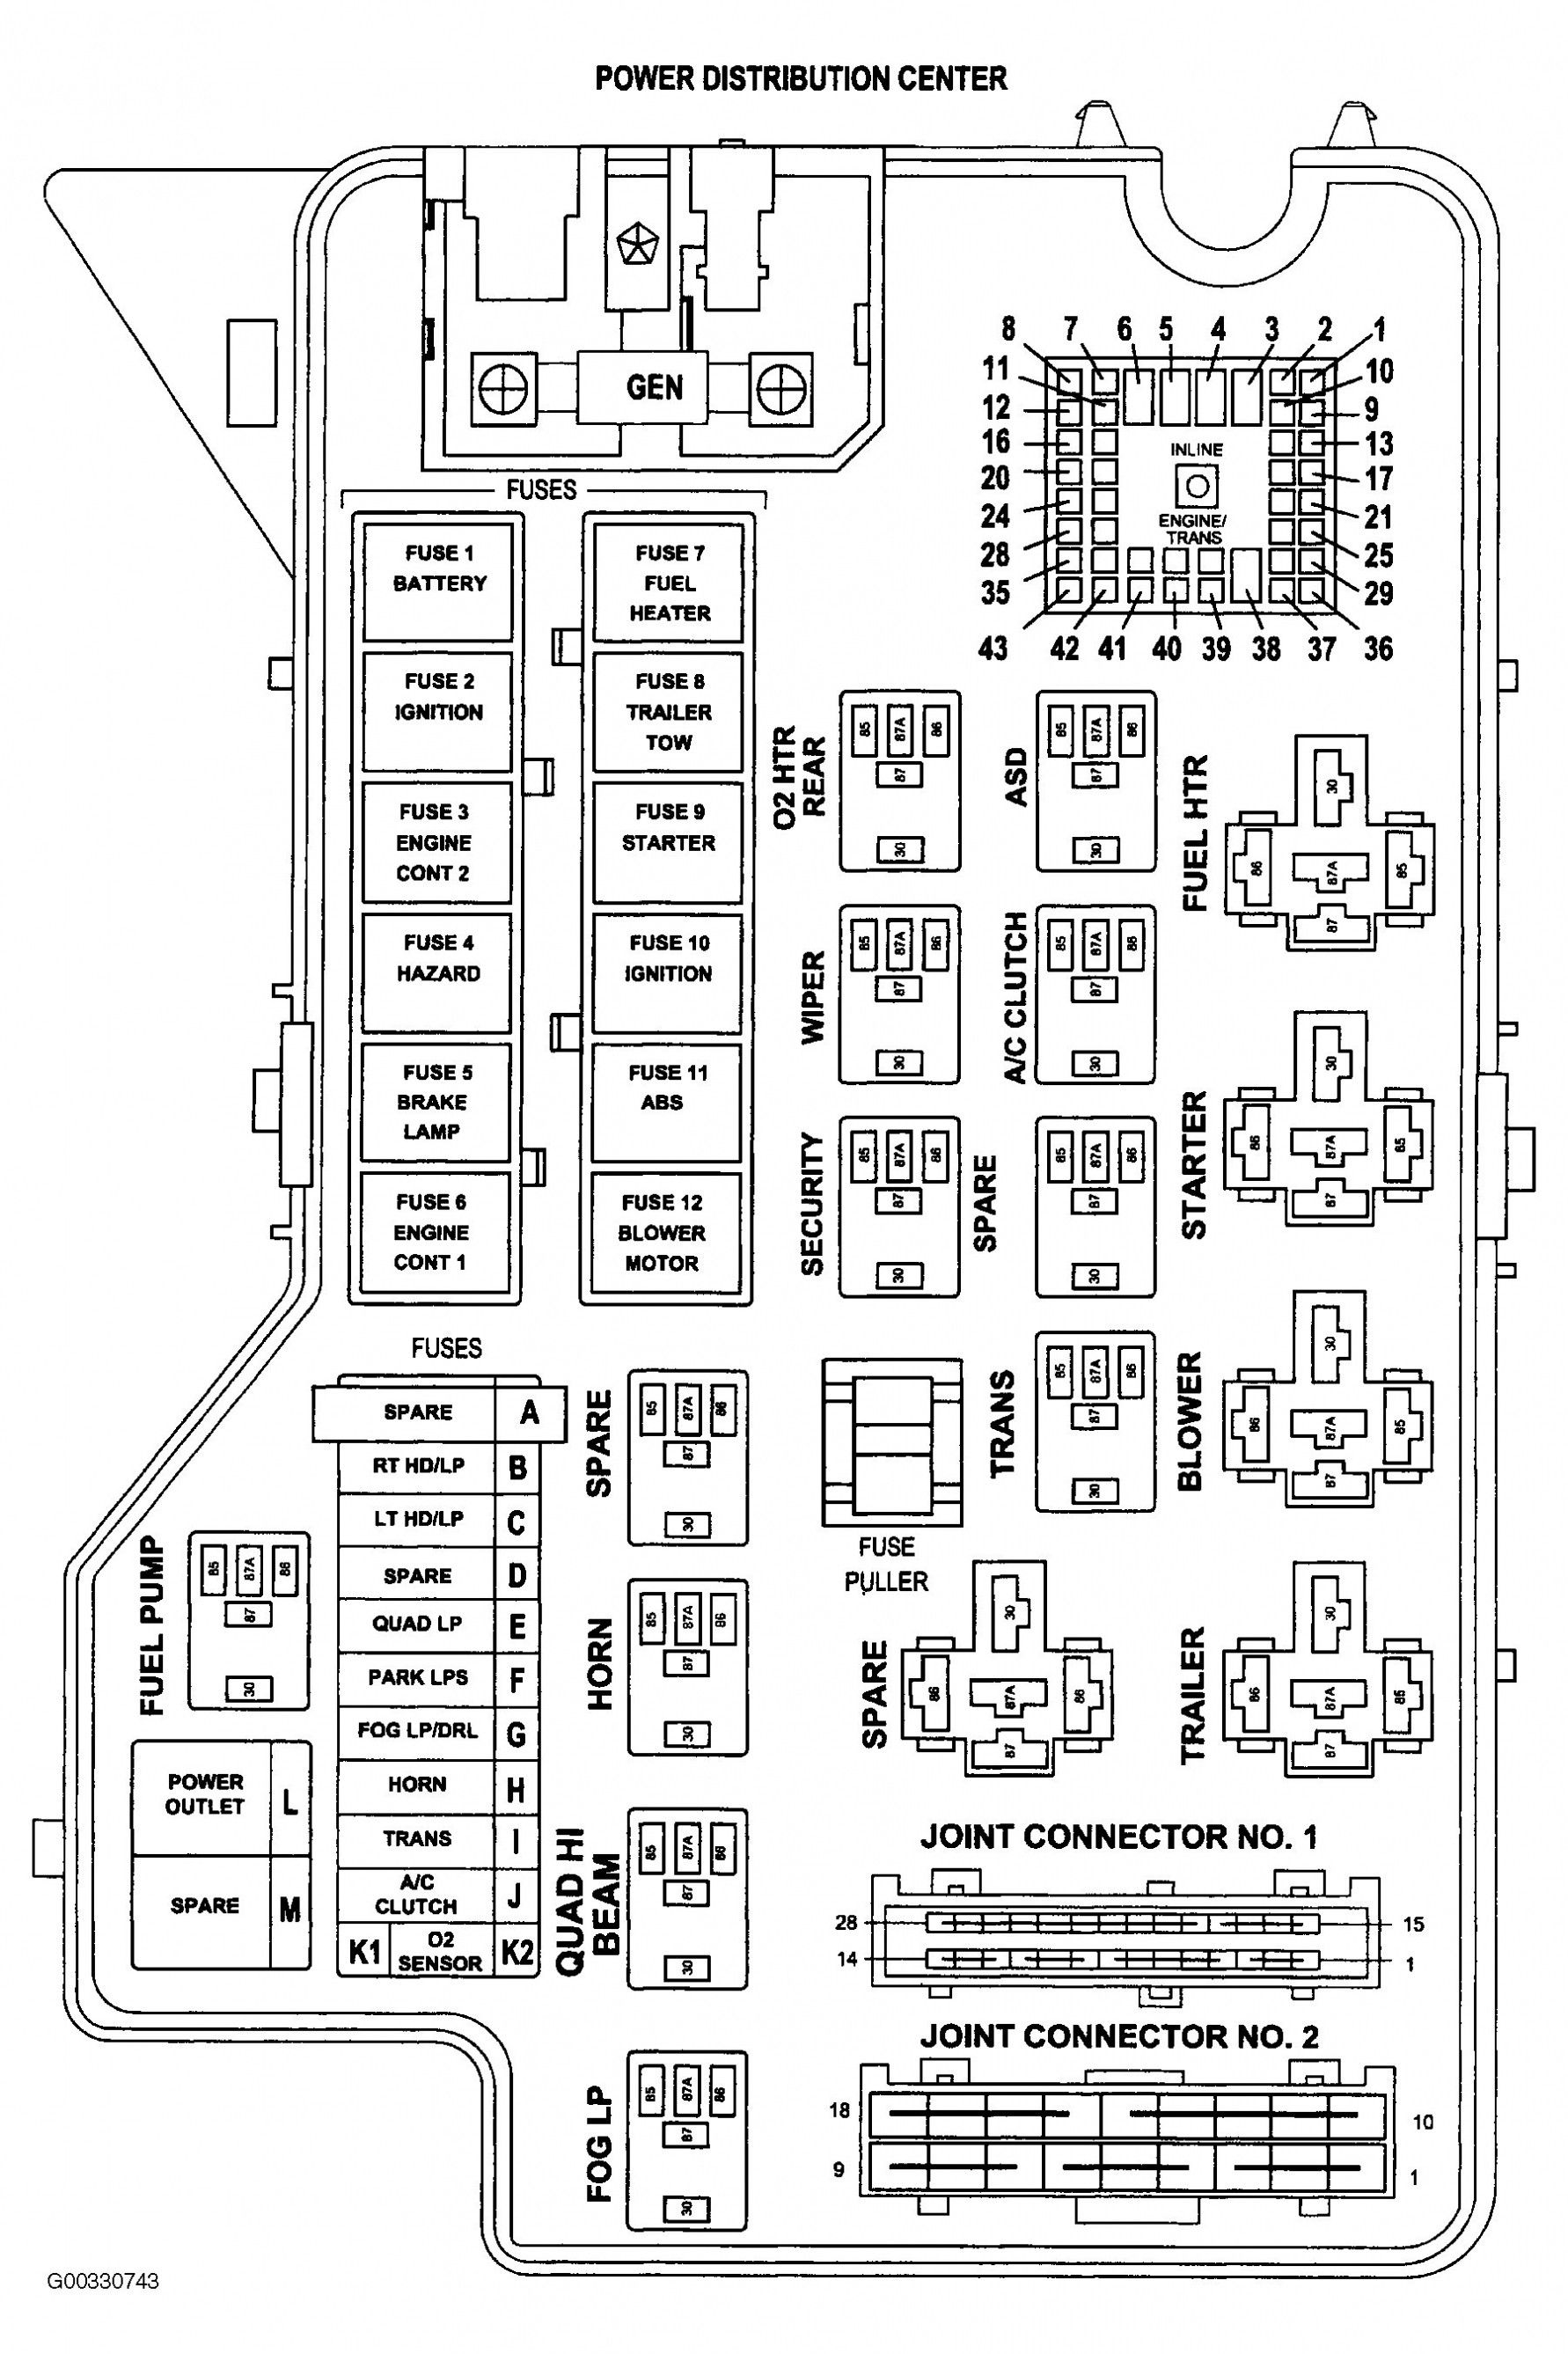 New 2011 Dodge Ram 1500 Radio Wiring Diagram #diagram # ...